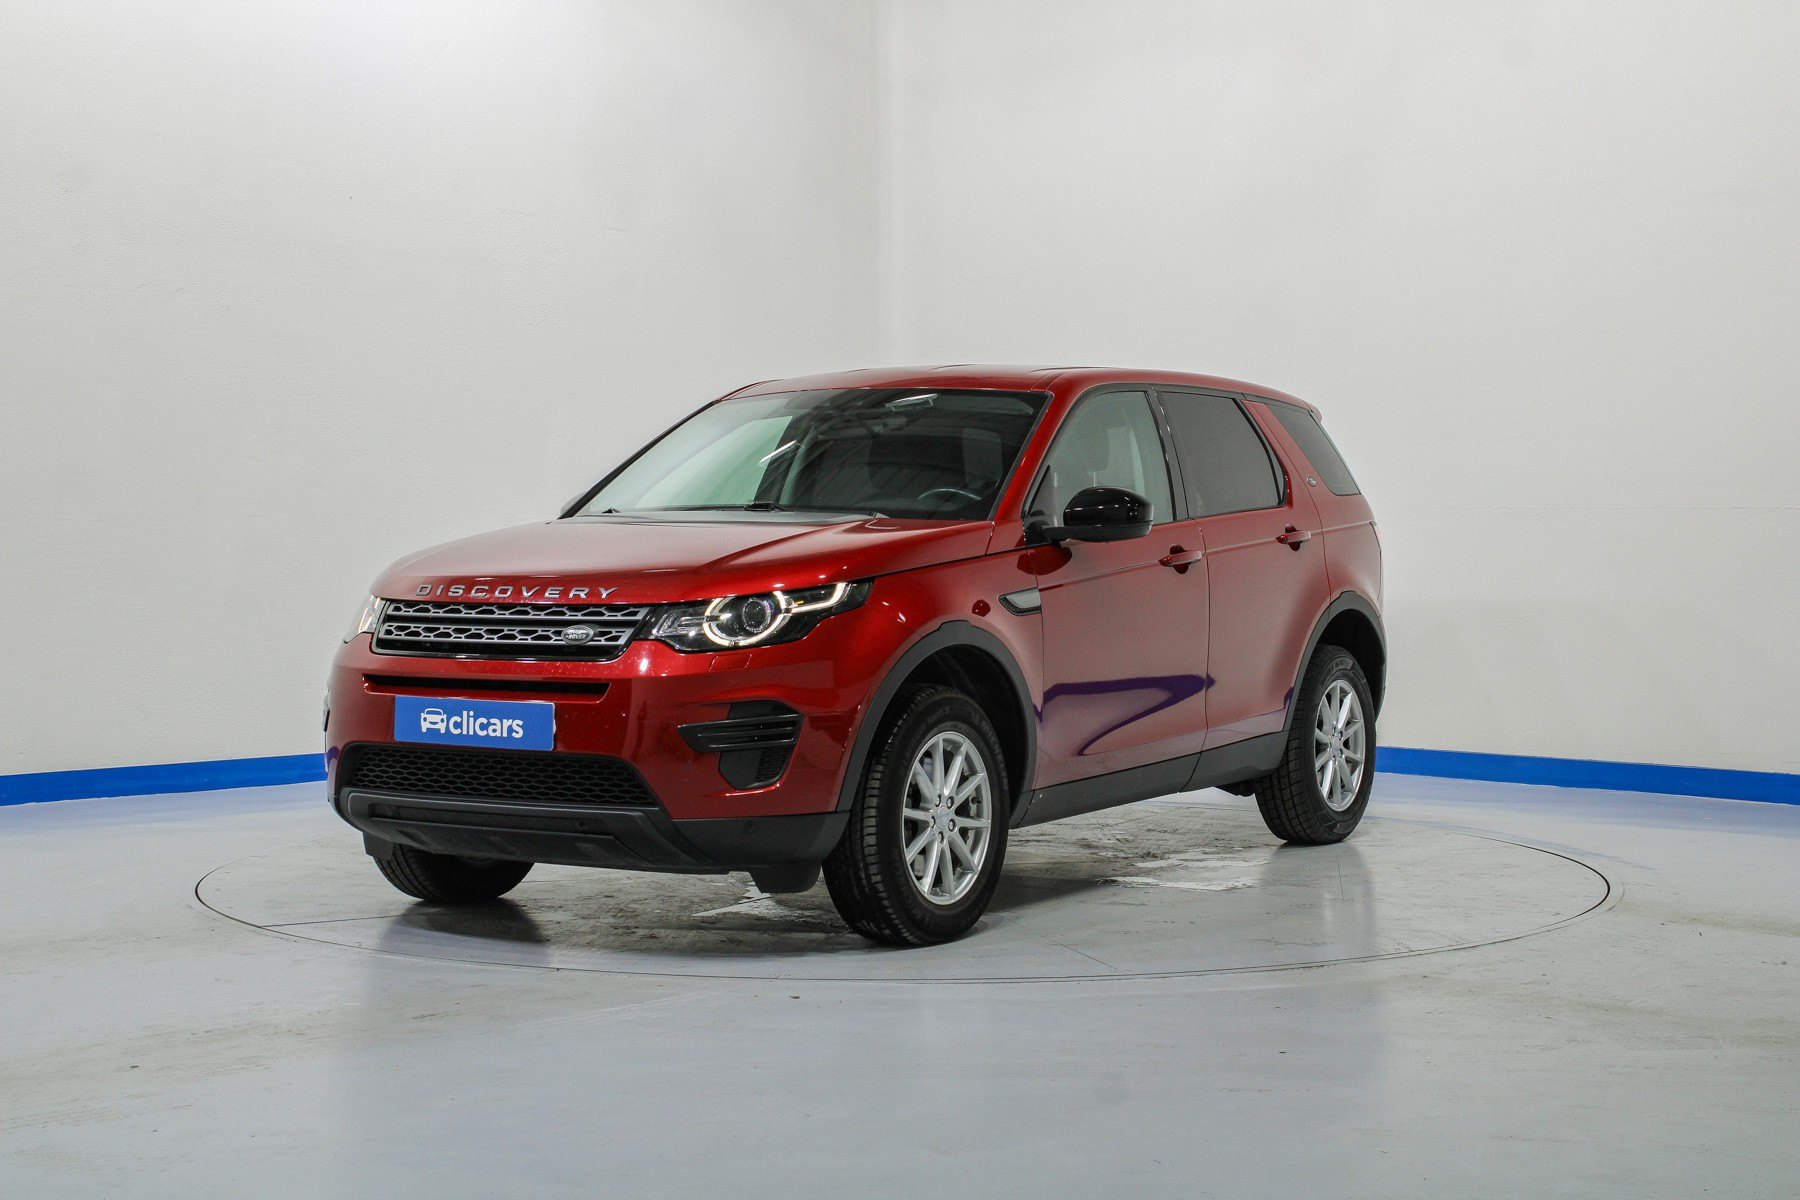 Land Rover Discovery Sport Diésel 2.0L TD4 110kW (150CV) 4x4 Pure 1